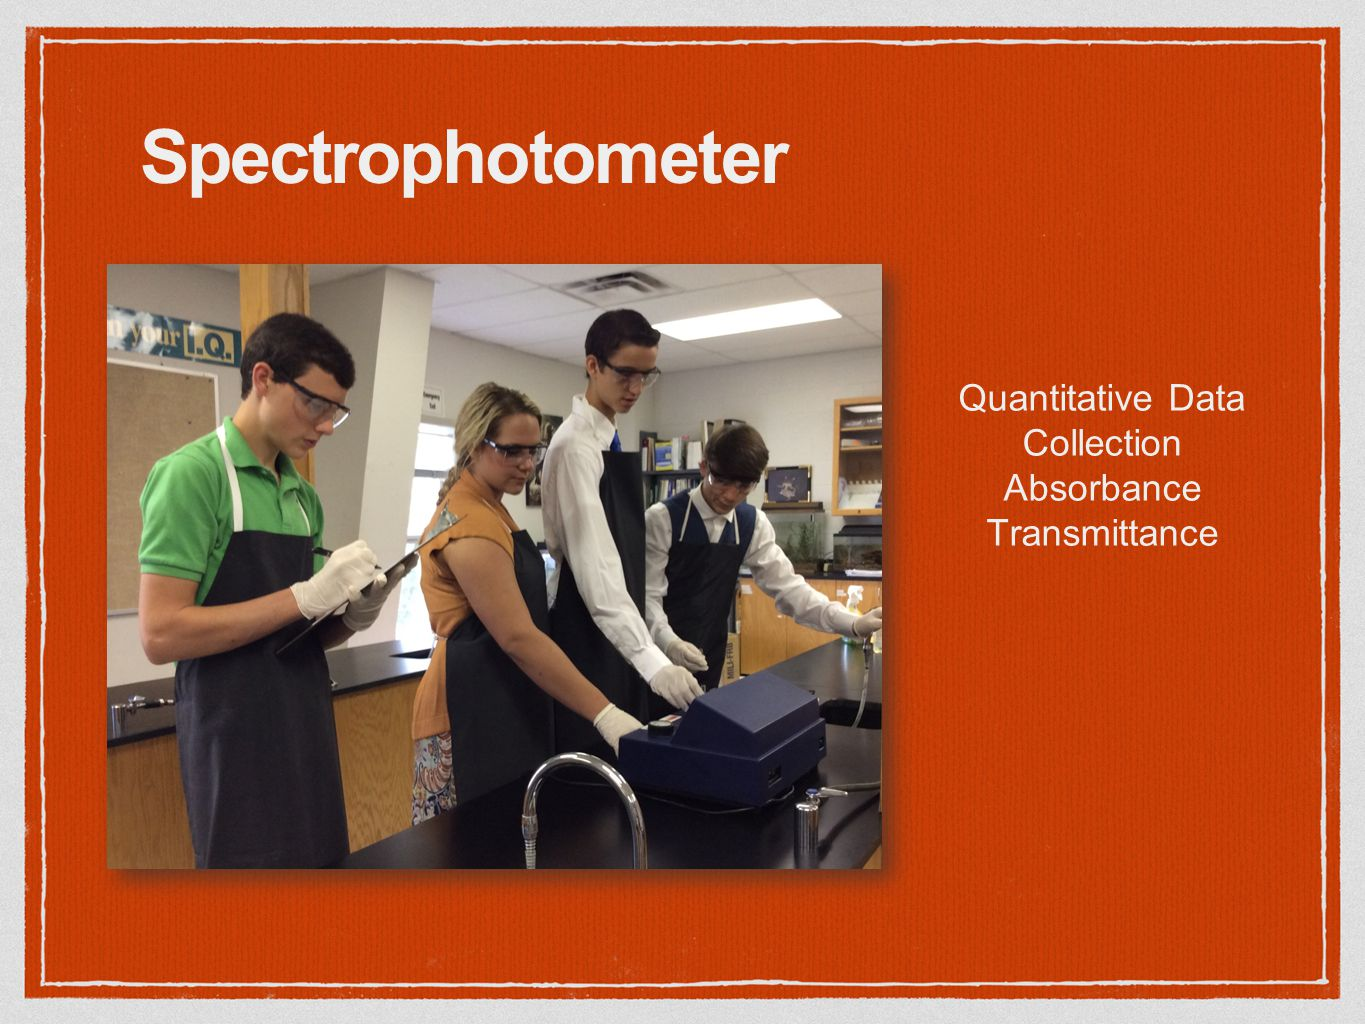 Spectrophotometer Quantitative Data Collection Absorbance Transmittance